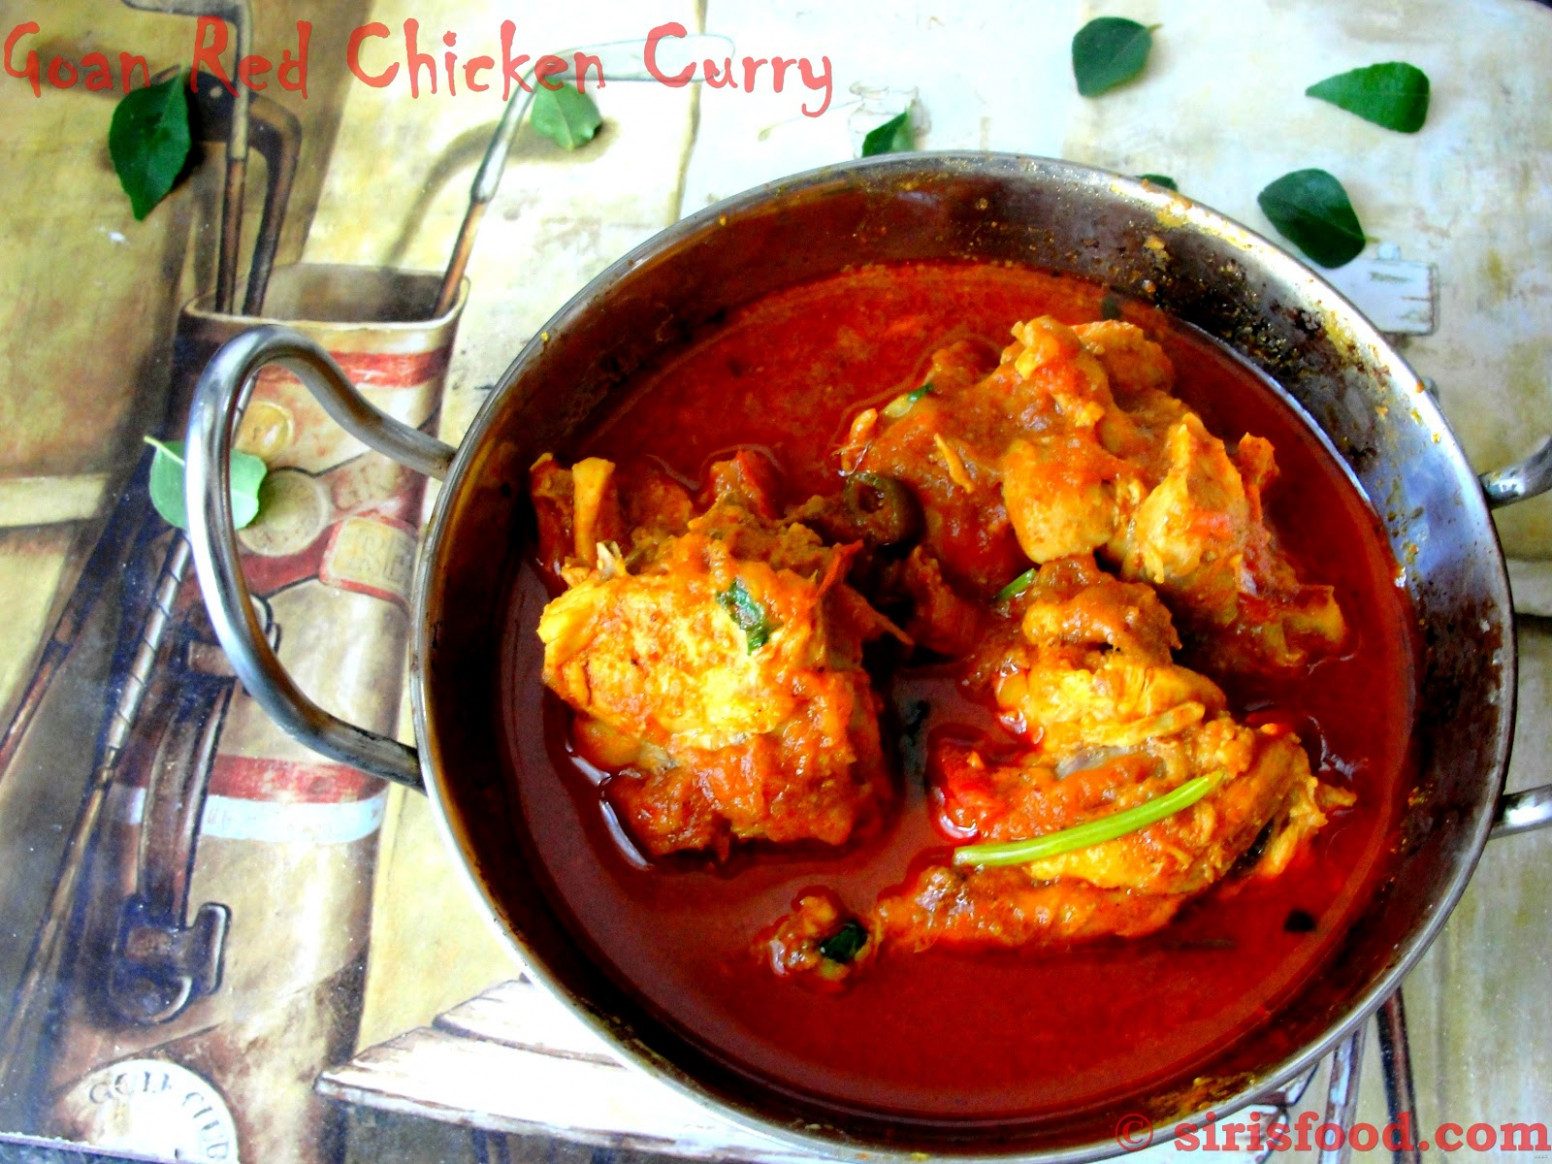 Goa Red Chicken Curry | Celebrity Chef Recipes - Sirisfood - chicken recipes goan